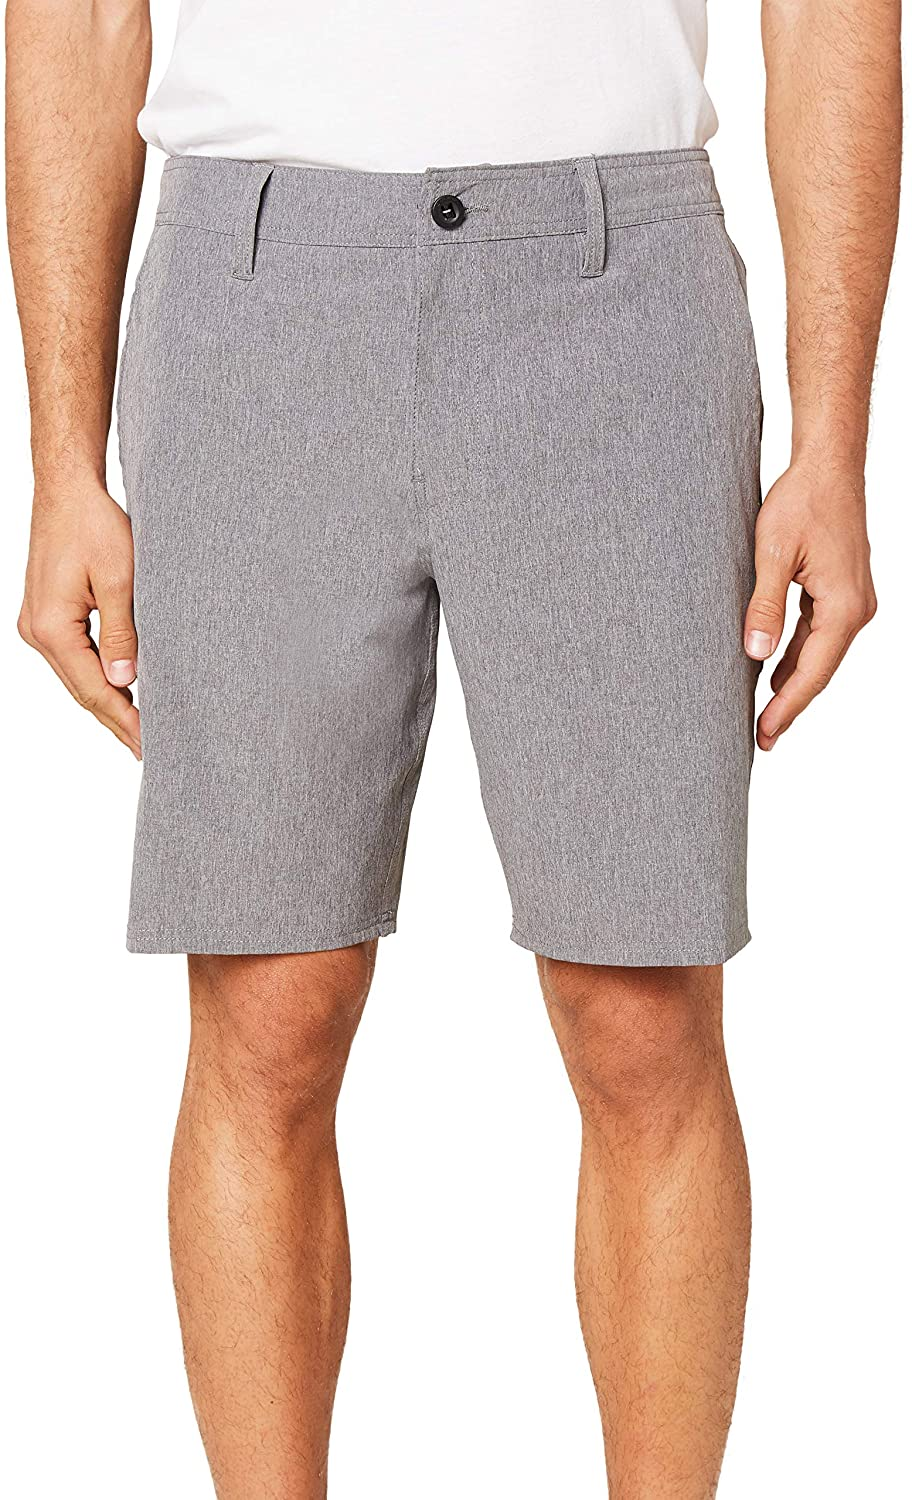 O'NEILL Men's Water Resistant Hybrid Stretch Walk Short, 19 Inch Outseam   Mid-Length Short  